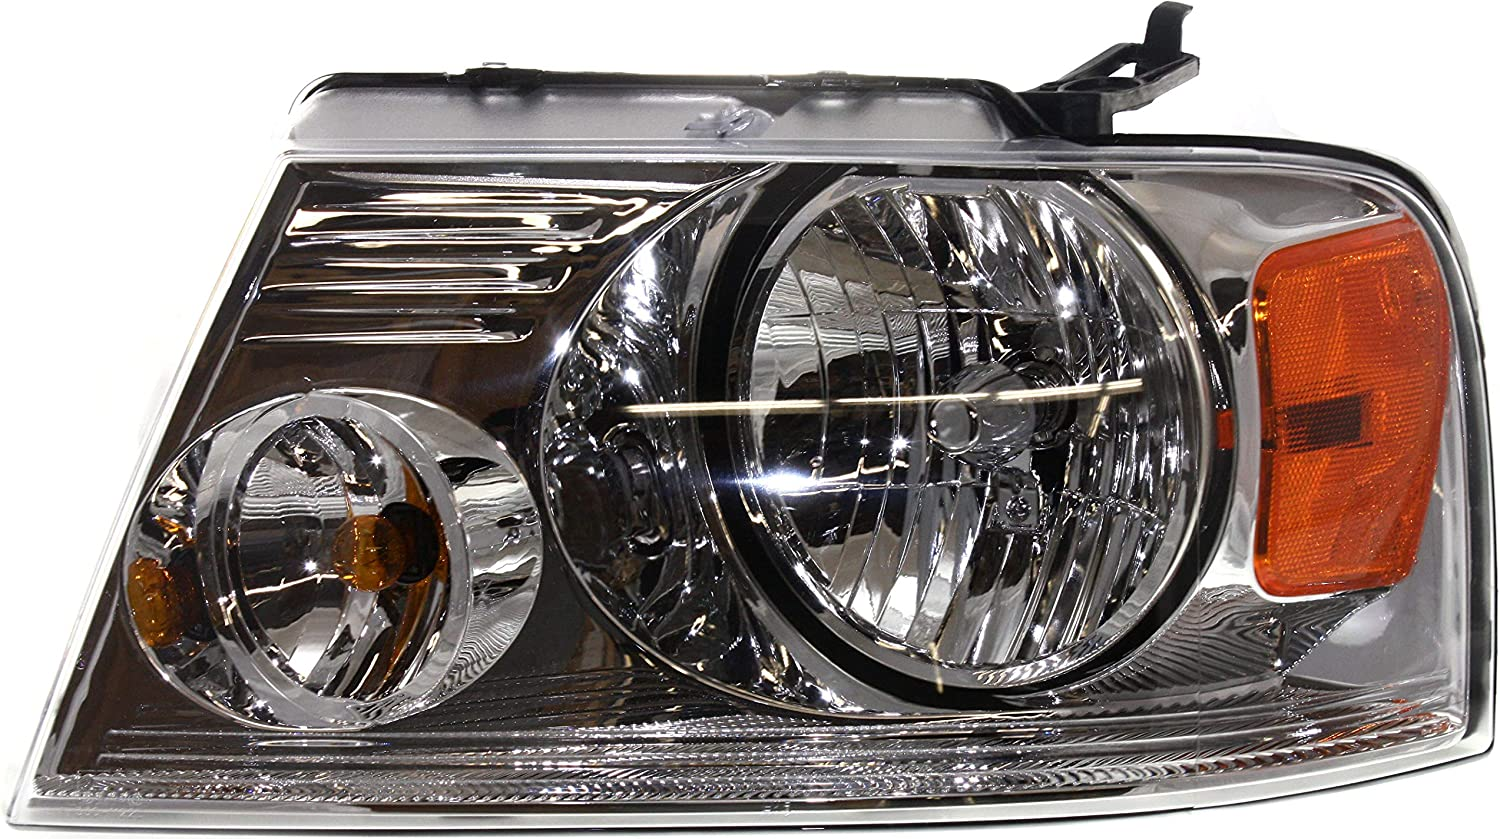 Memphis Mall Garage-Pro Headlight for FORD F-150 LH 04-08 Halogen Max 51% OFF Assembly w